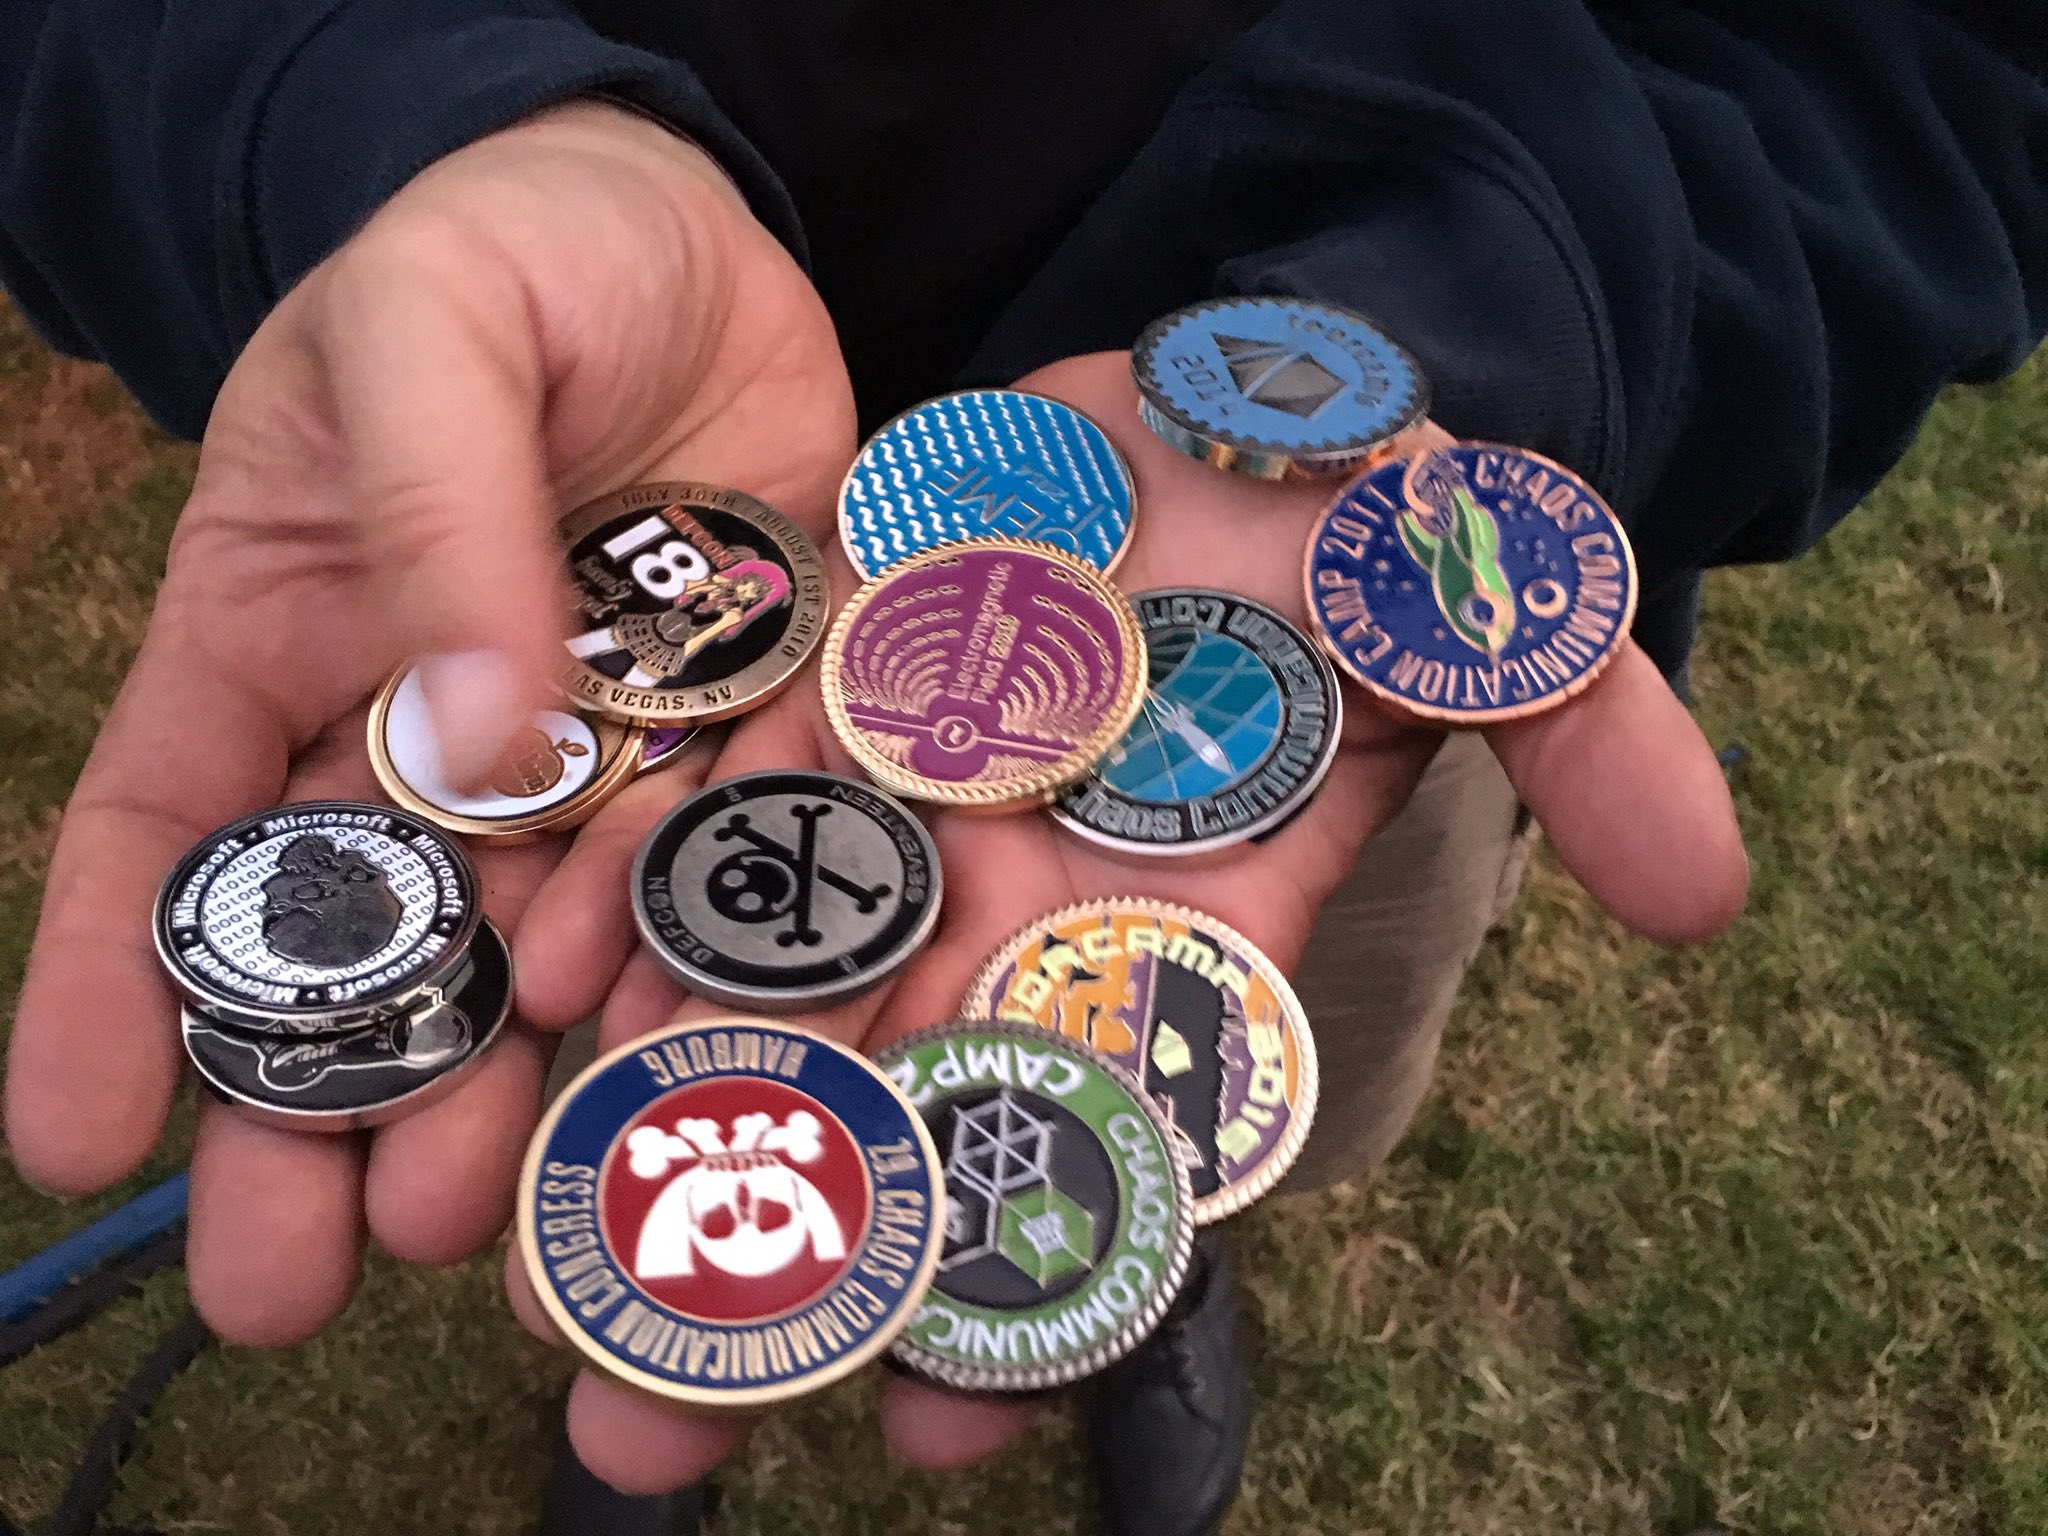 Just got my first ever challenge coin from @mcflyhh happy day! #emfcamp https://t.co/gapLdERtVK